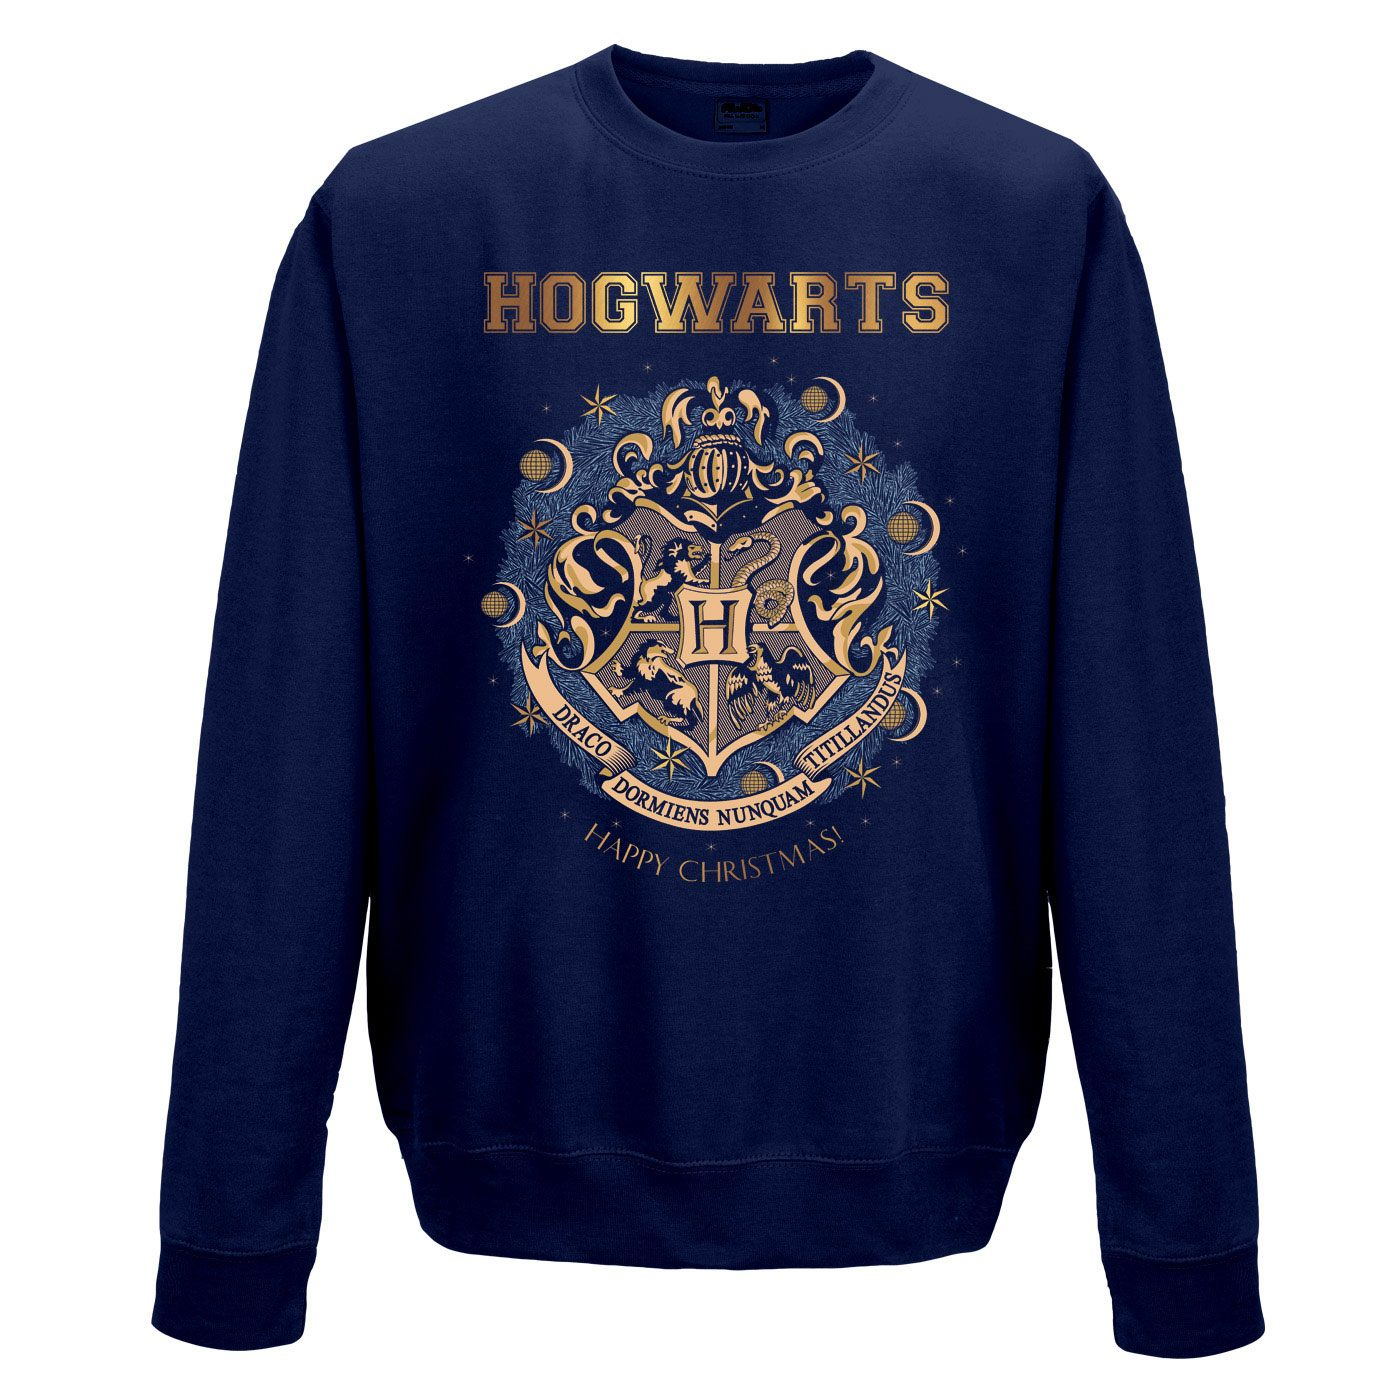 Harry Potter Sweatshirt Christmas At Hogwarts Size M